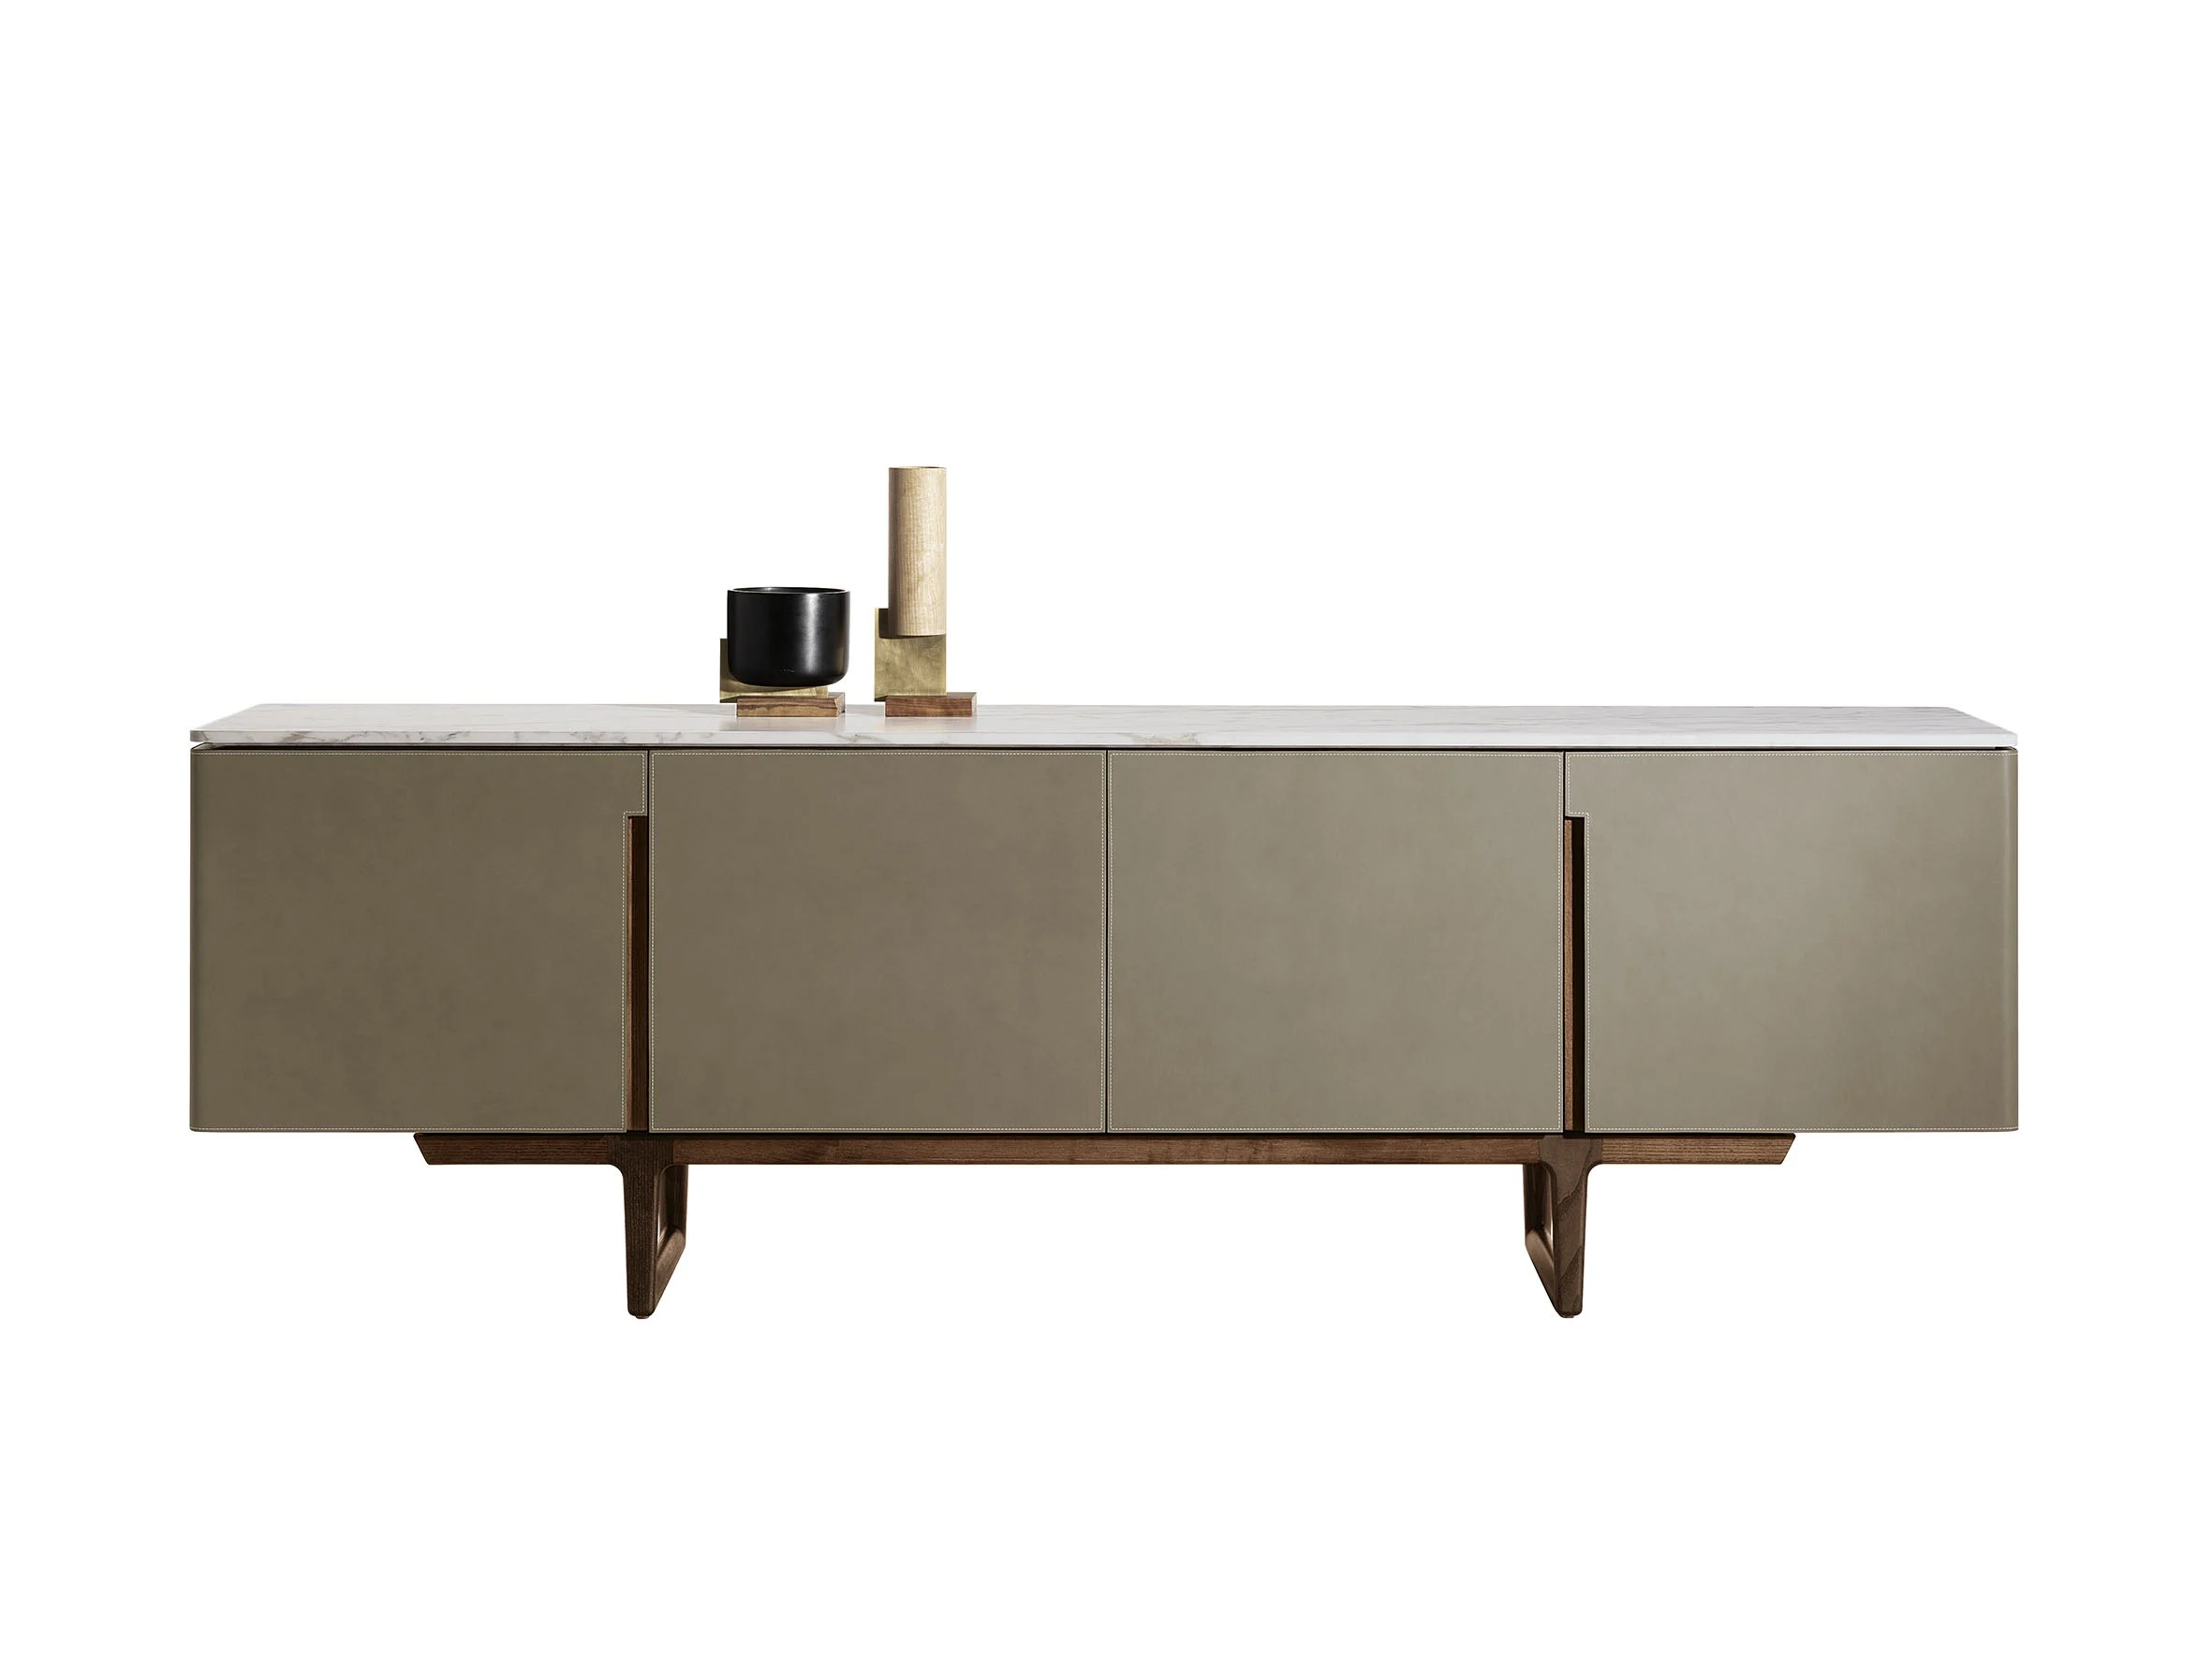 FIDELIO Sideboard THE COLLECTION  Furniture and Complementary units Collection by Poltrona Frau